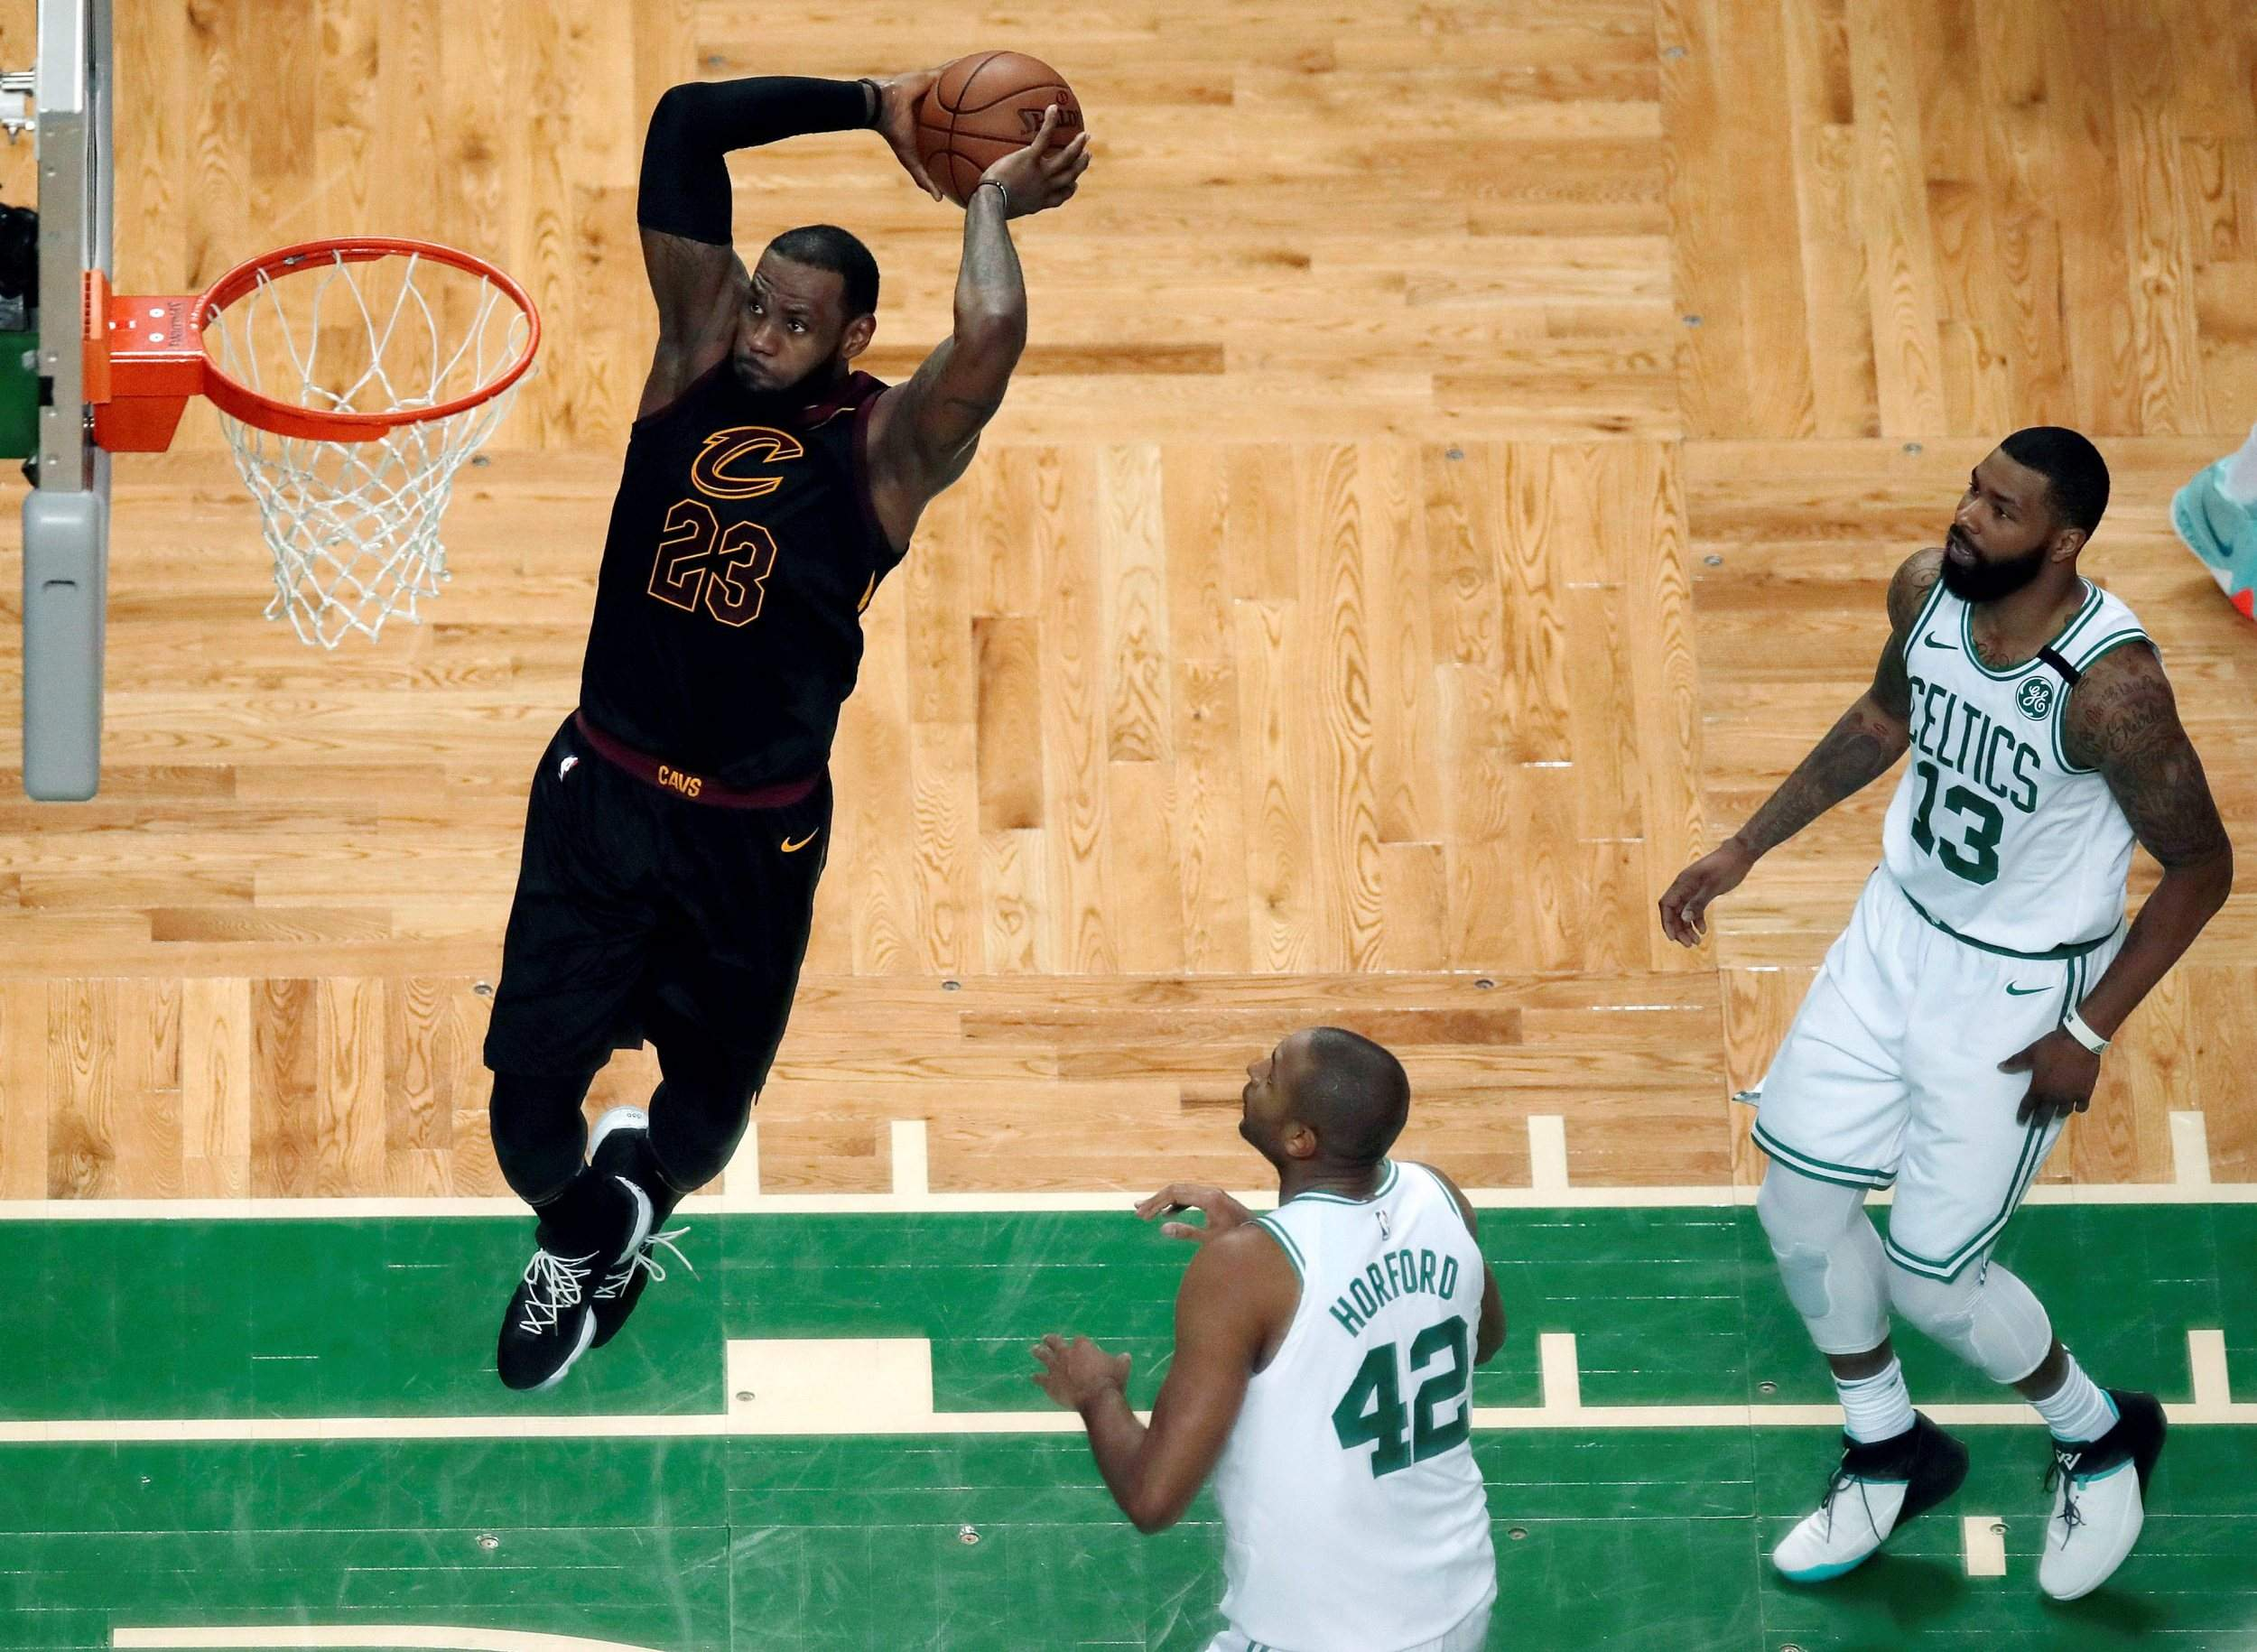 472752c4809 Cleveland Cavaliers forward LeBron James soars to dunk in front of Boston  Celtics forward Al Horford (42) and forward Marcus Morris (13) during the  first ...